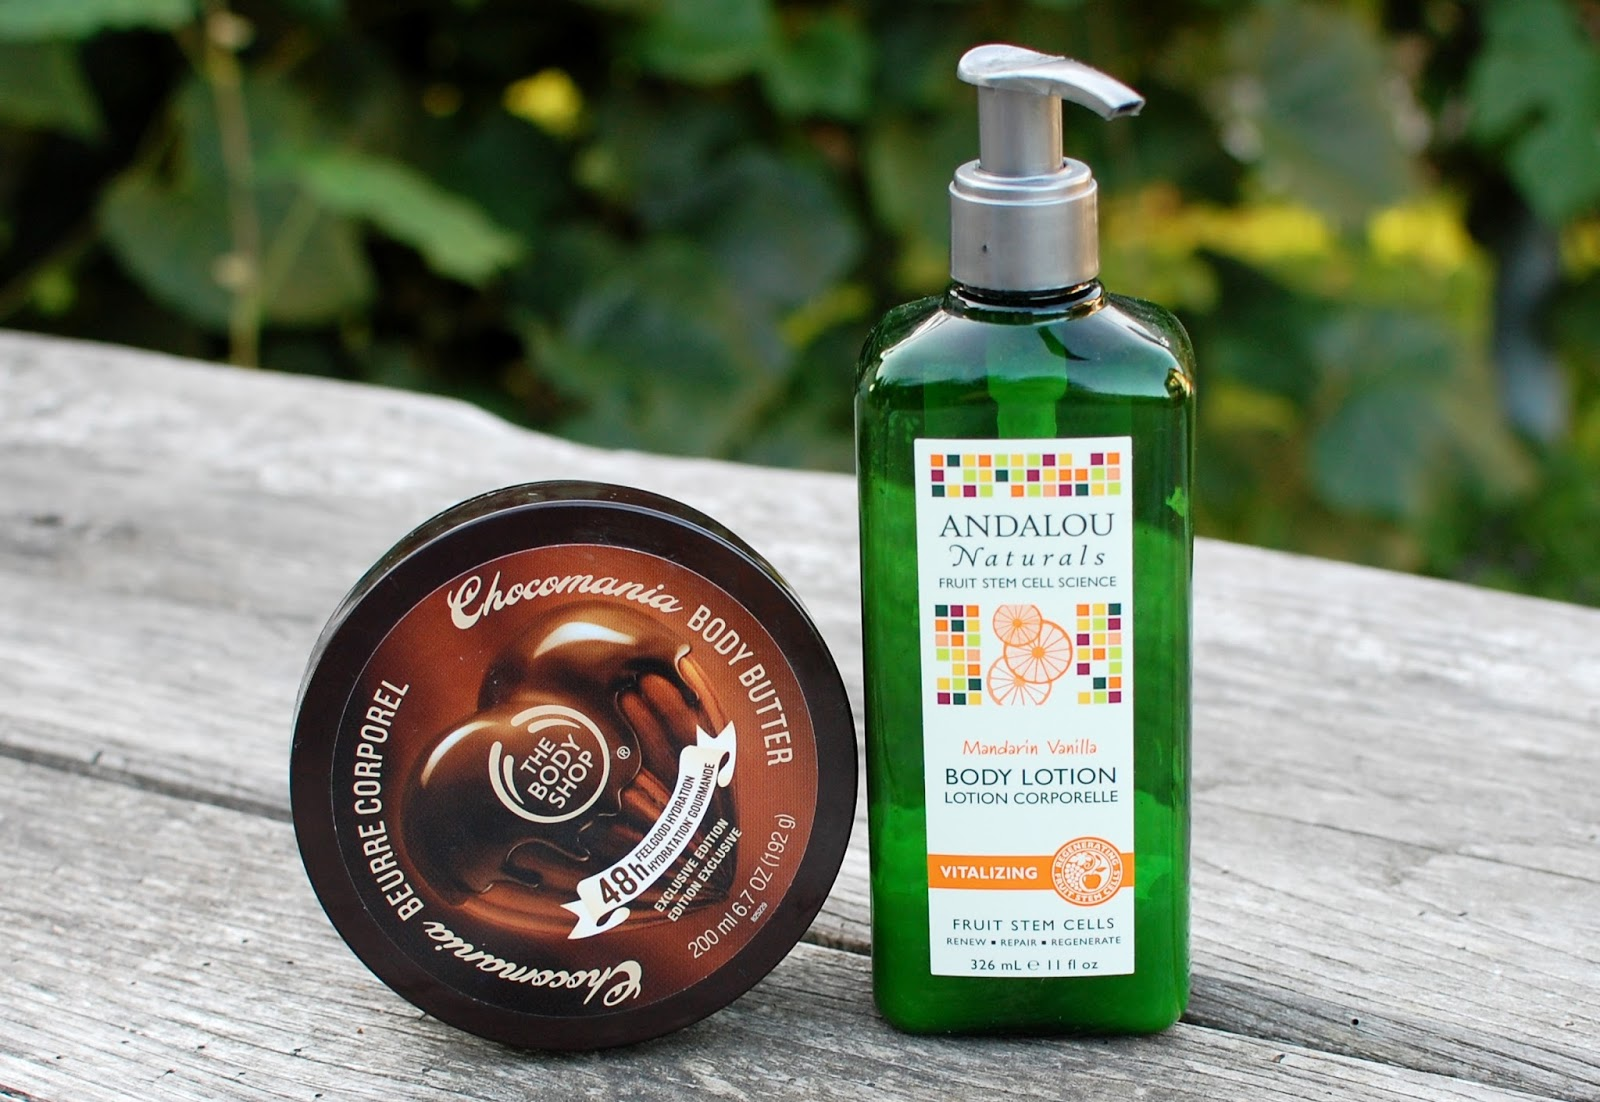 Andalou Naturals, The Body Shop